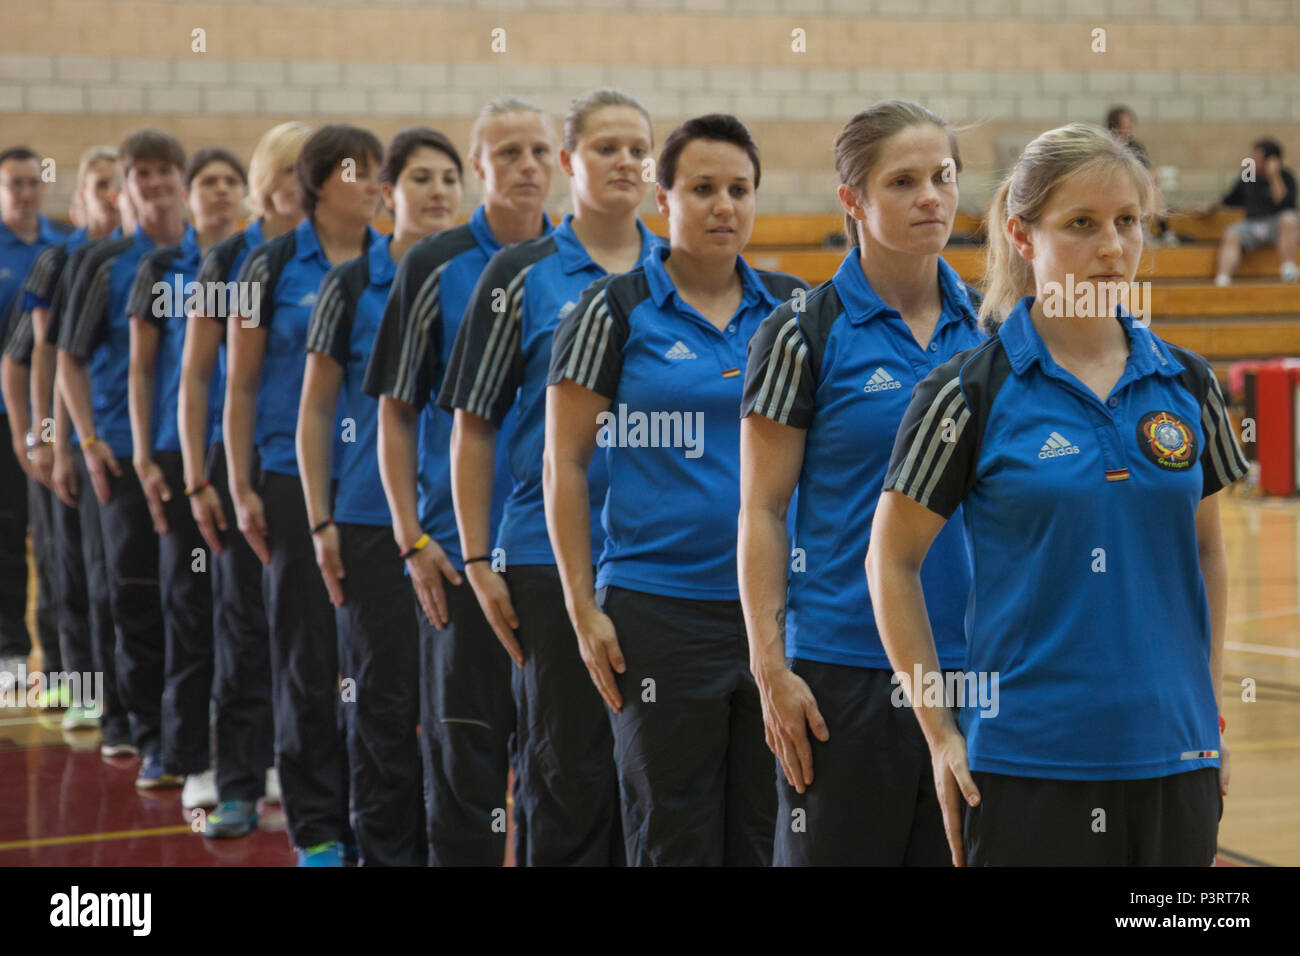 The team representing Germany in the World Military Women's Basketball Championship, stand at attention for the 2016 Conseil International Du Sport Militaire (CISM) closing ceremony on Camp Pendleton, Calif., July 29, 2016. The CISM championships are hosted around the world and provide an avenue for the United States to project the positive image with valuable military-to-military engagement through sports. (U.S. Marine Corps photo by Cpl. Tyler S. Dietrich) - Stock Image